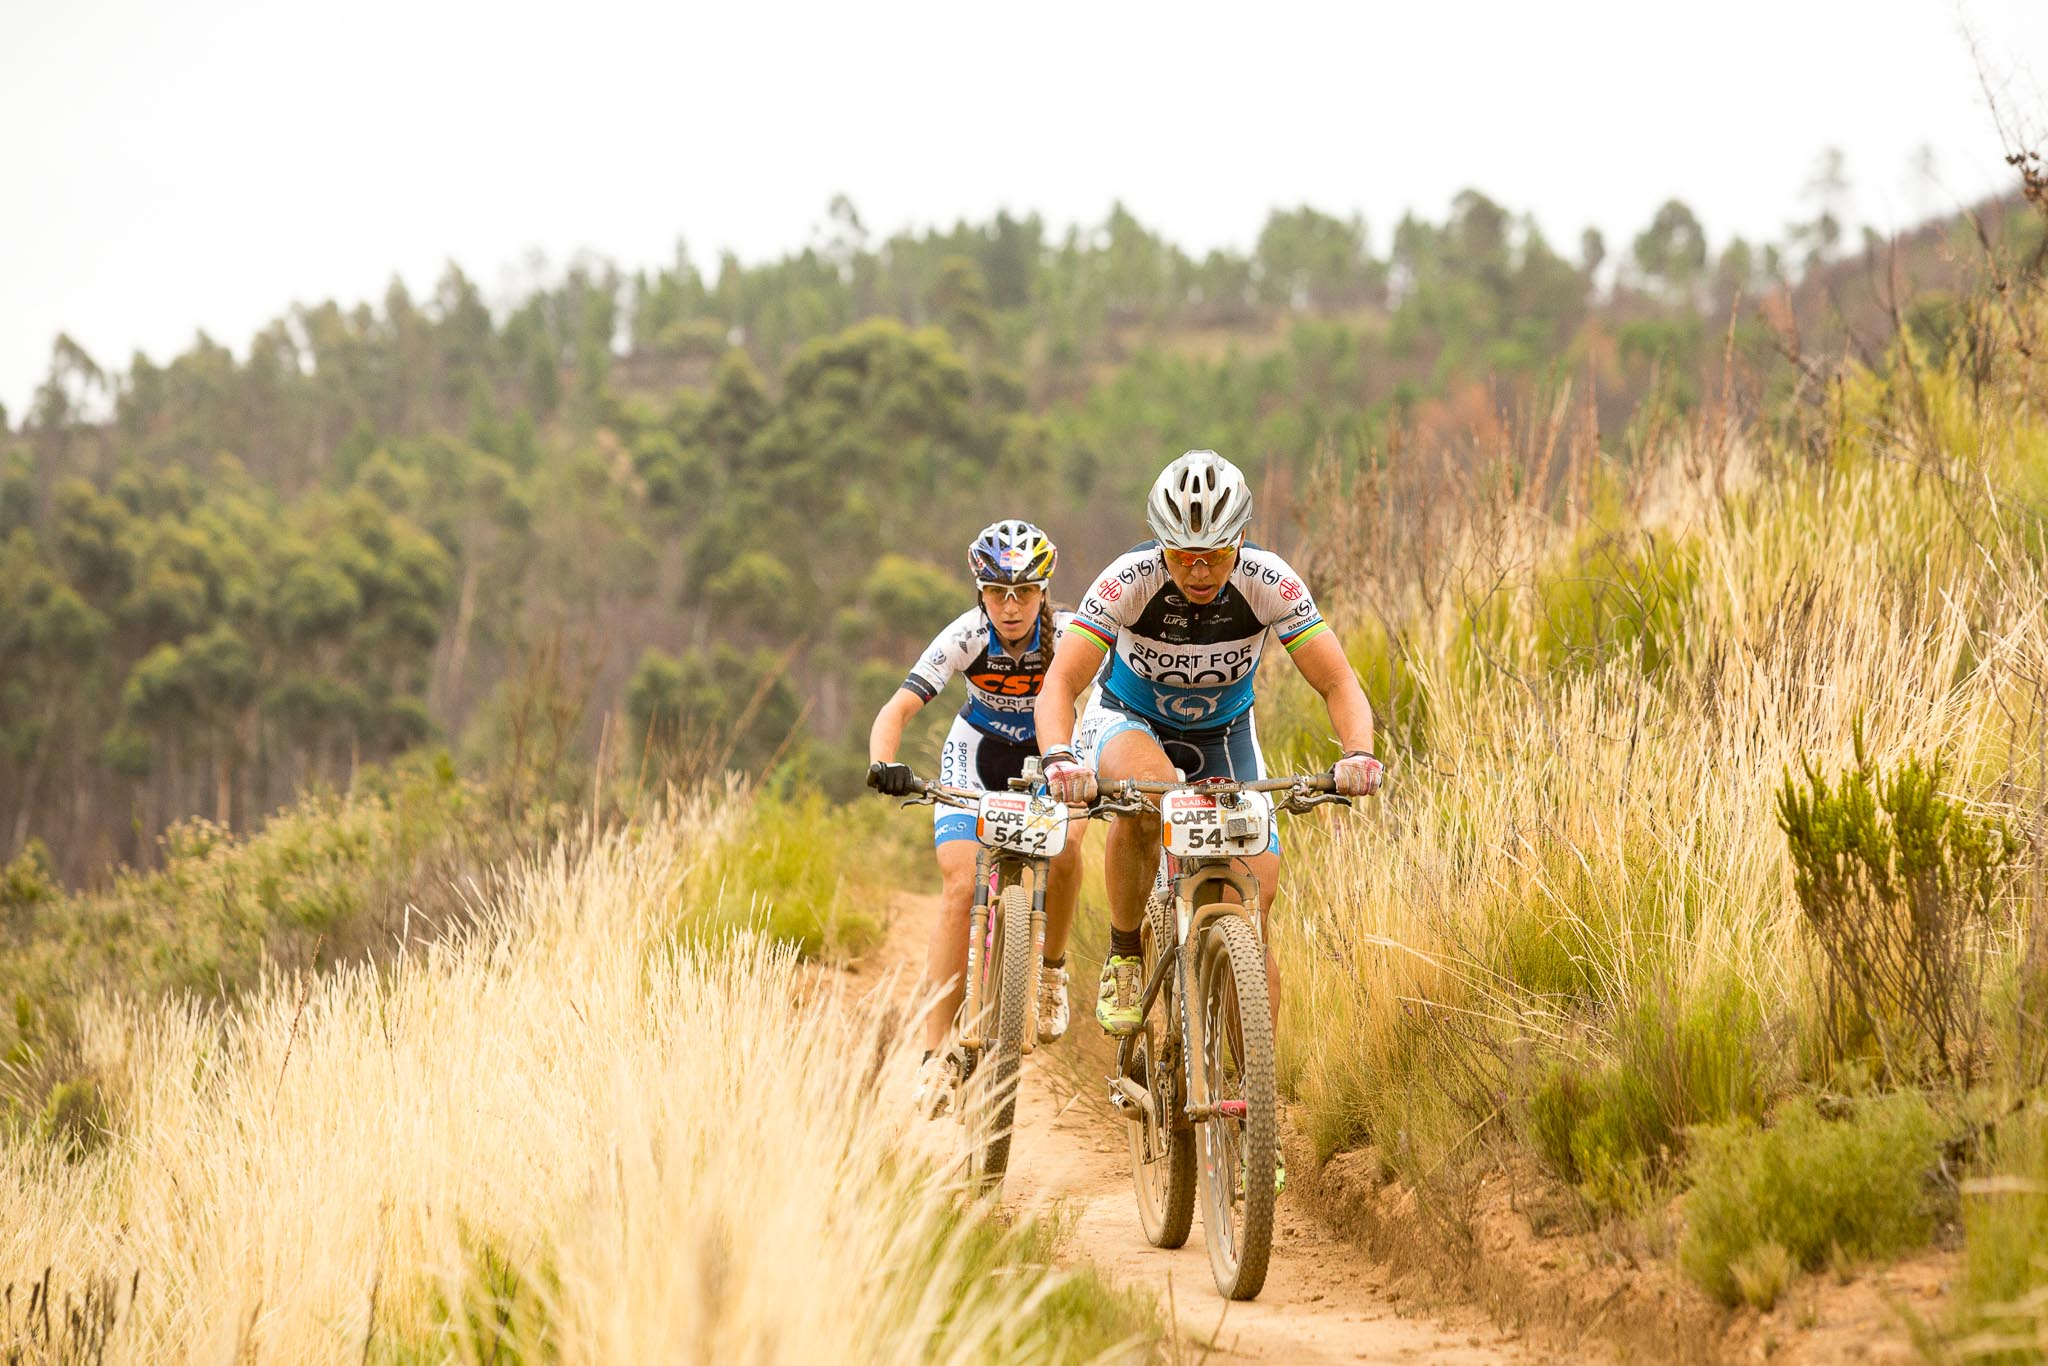 Sabine Spitz (front) and Yana Belomoina (rear) during stage 4 of the 2016 Absa Cape Epic Mountain Bike stage race from the Cape Peninsula University of Technology in Wellington, South Africa on the 17th March 2016 Photo by Sam Clark/Cape Epic/SPORTZPICS PLEASE ENSURE THE APPROPRIATE CREDIT IS GIVEN TO THE PHOTOGRAPHER AND SPORTZPICS ALONG WITH THE ABSA CAPE EPIC ace2016